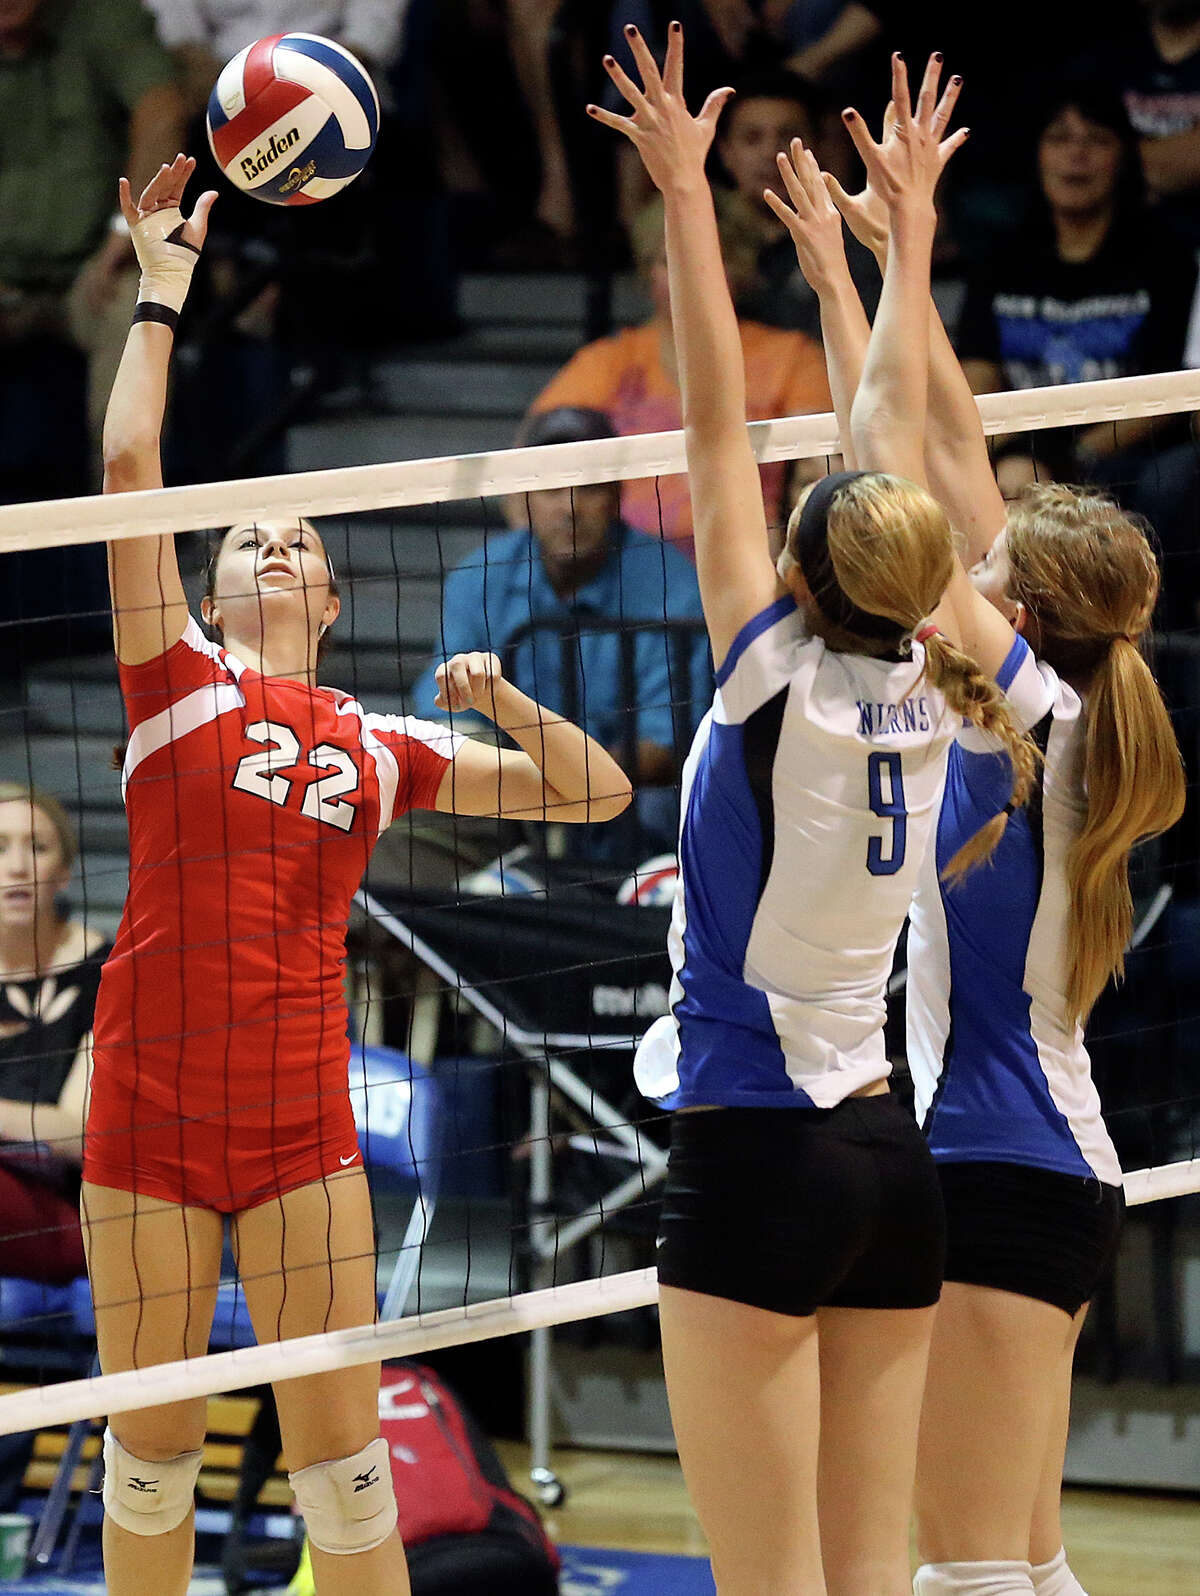 Canyon's Madison Williams gets the ball by Unicorn defenders Neka Cuppettilli and Alexis Uleman as New Braunfels hosts Canyon in volleyball at New Braunfels High School gym on October 15, 2013.